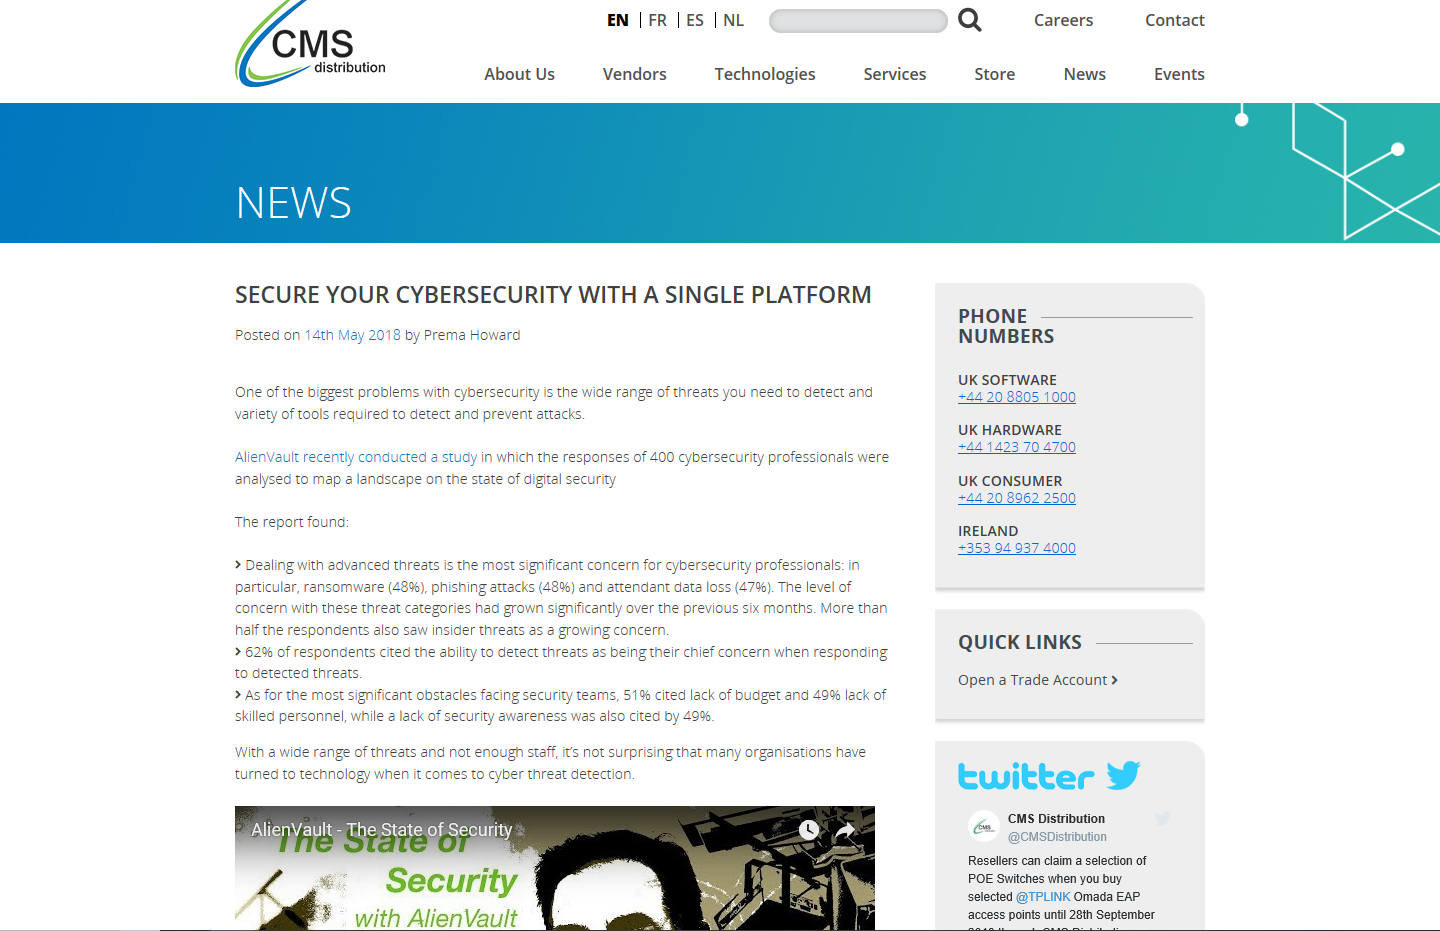 Cybersecurity article